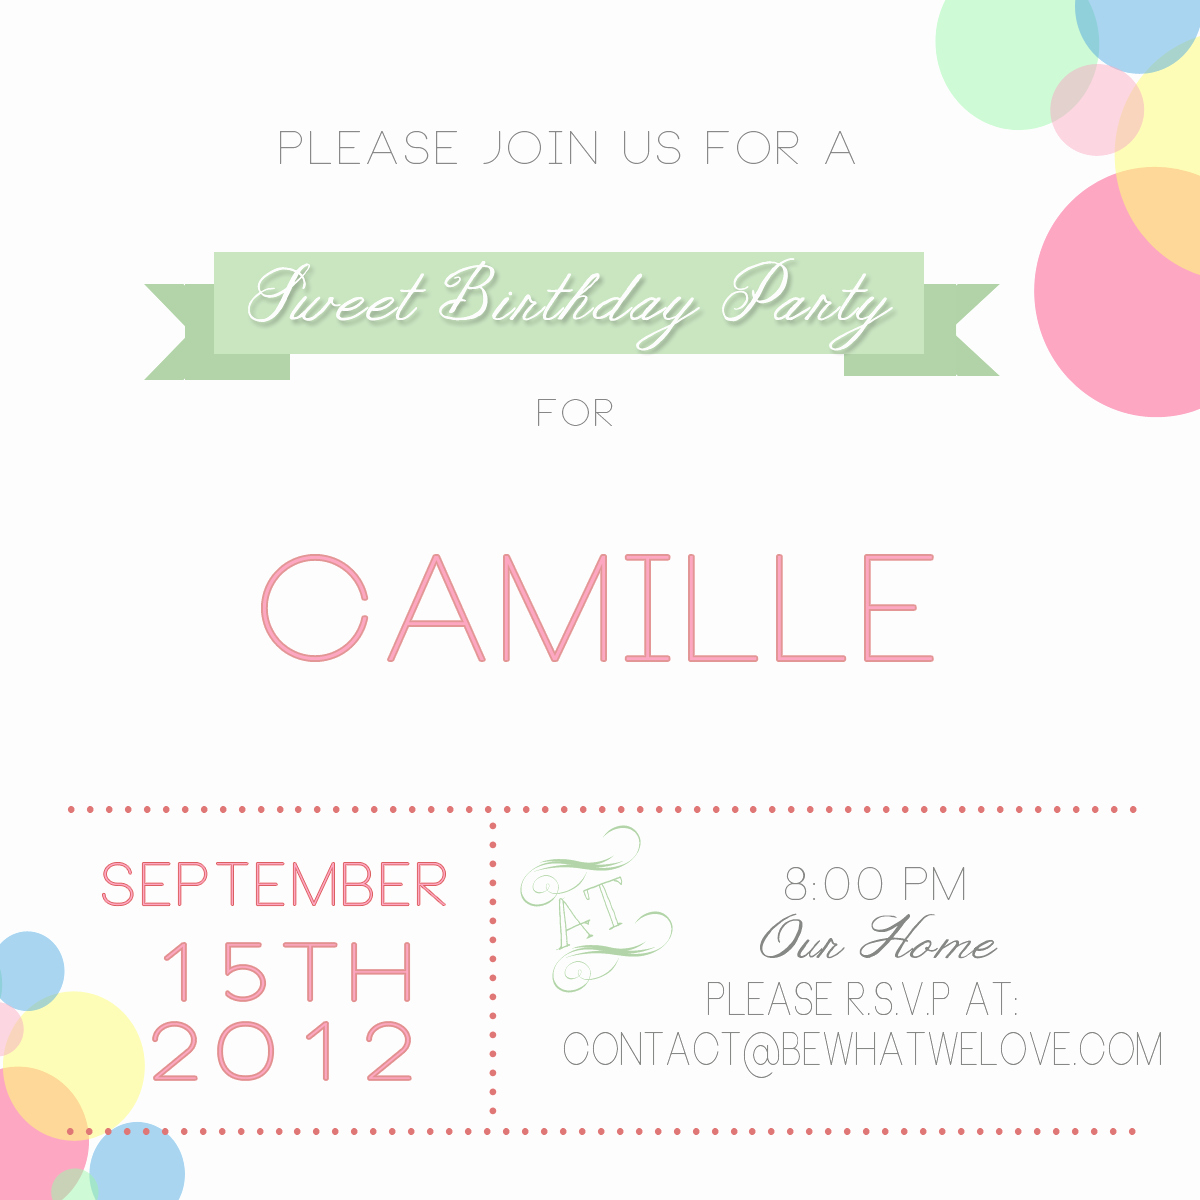 Email Party Invite Template Unique Free Email Party Invitations